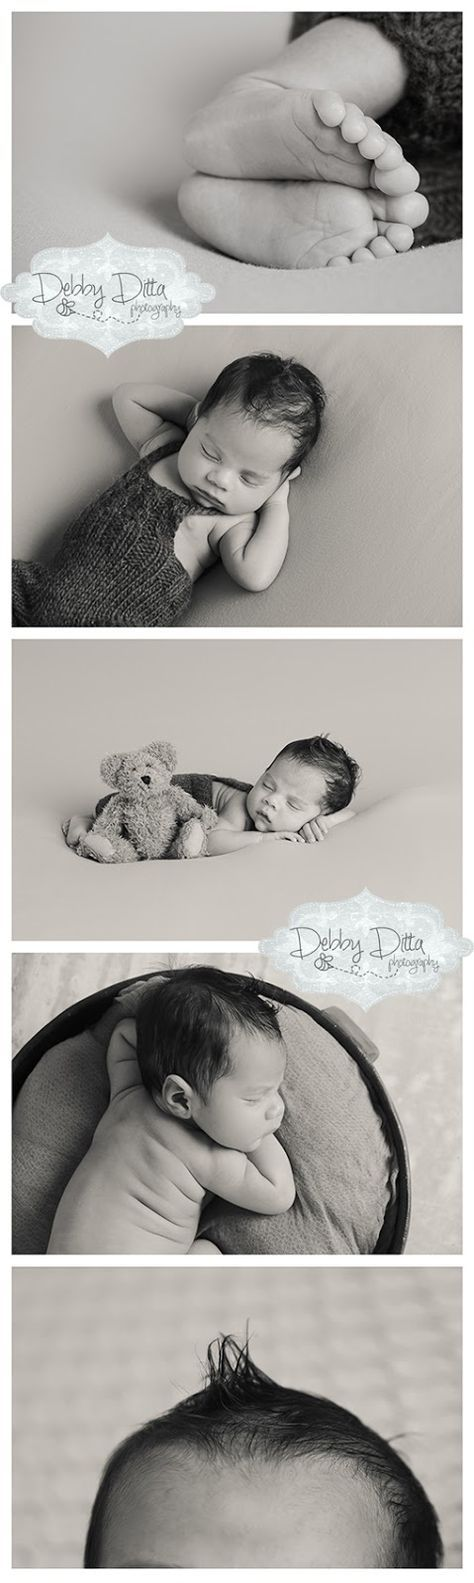 Debby Ditta Photography: Newborn baby boy Alexander at 25 days old. Tomball Studio Newborn Photography session, child, children, debbie, ditta, tomball, spring, conroe, the woodlands, katy, sugarland, the heights, cypress, houston, hockley, montgomery, magnolia, boutique, custom sessions, family, newborn, baby, infant, baby, boy, Photographer Debby Ditta Photography. Newborn Session